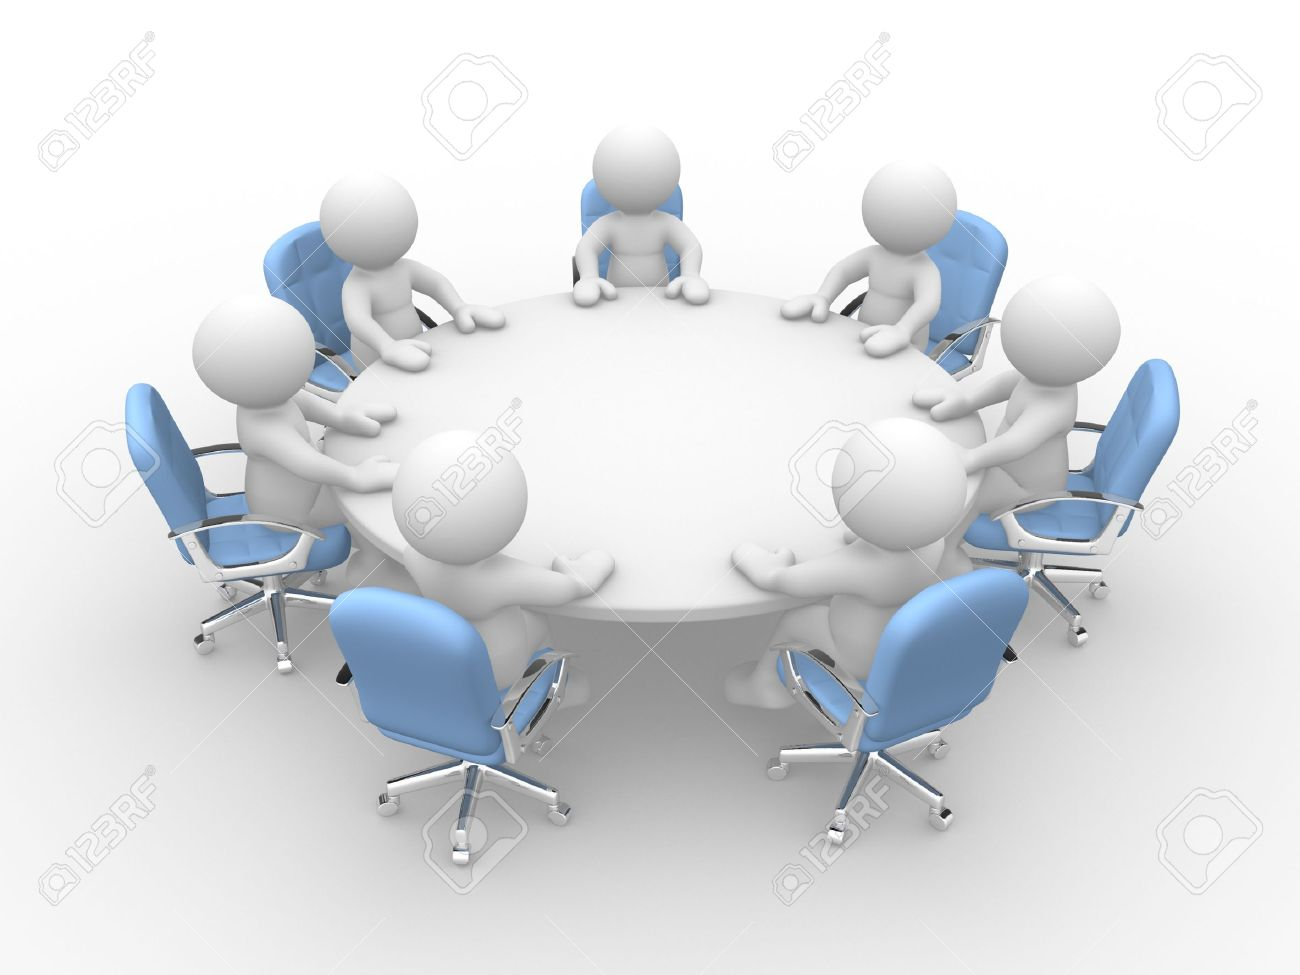 Round table meeting icon - Gallery Of Round Table Meeting Icon